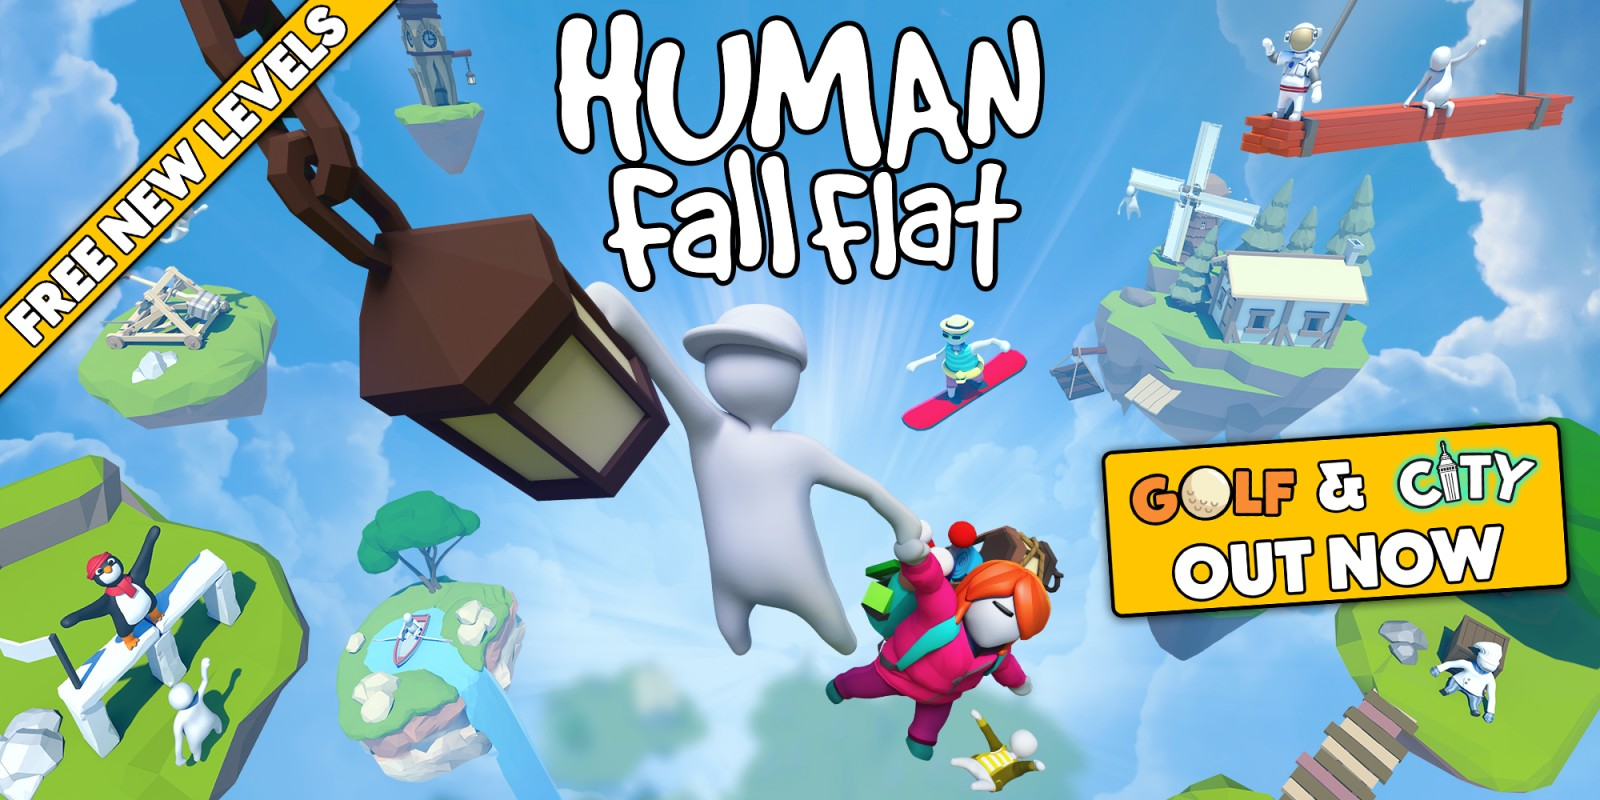 Fall Animal Crossing Wallpaper Human Fall Flat Nintendo Switch Download Software